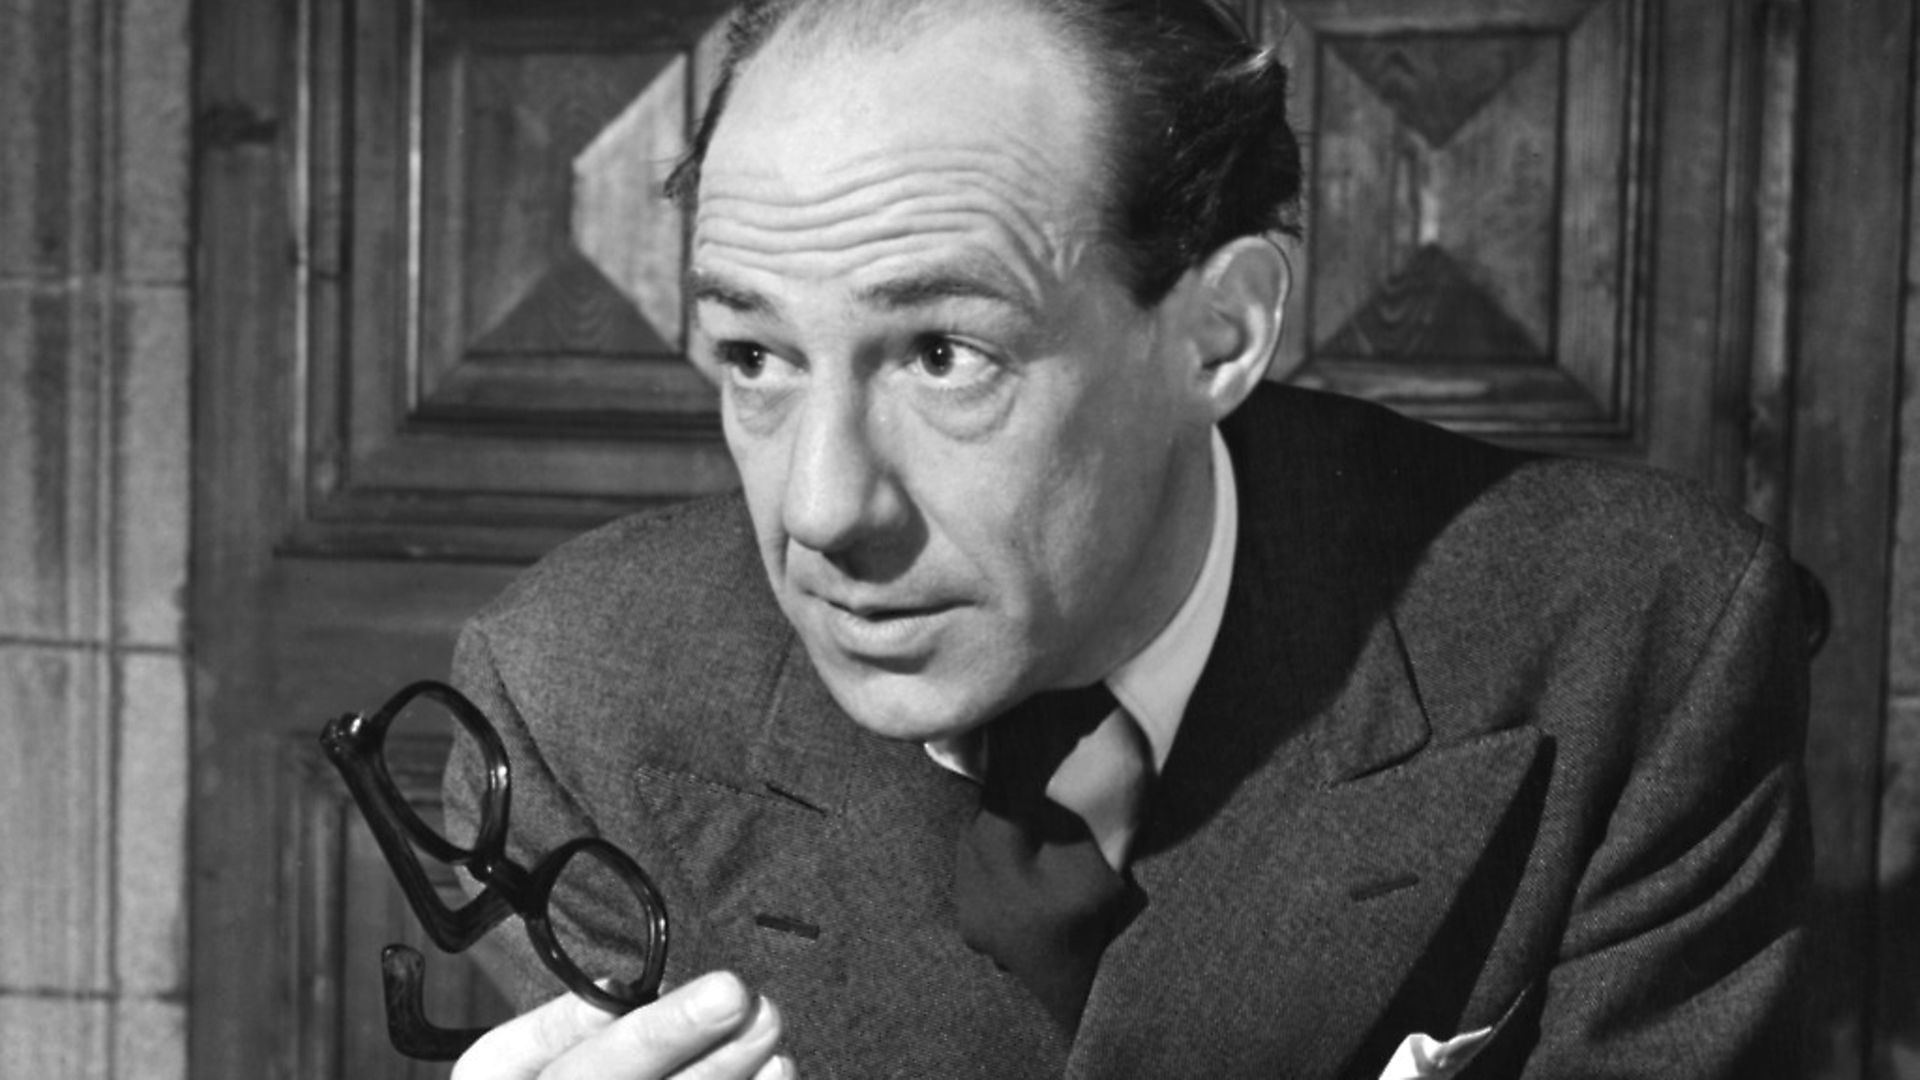 English actor Michael Hordern (1911 - 1995) as Christopher Williams, head of the National Atomic Board, in the stage adaptation of the television play 'Party Manners', by Val Gielgud, October 1950. Photo: George Konig/Keystone Features/Hulton Archive/Getty Images - Credit: Getty Images